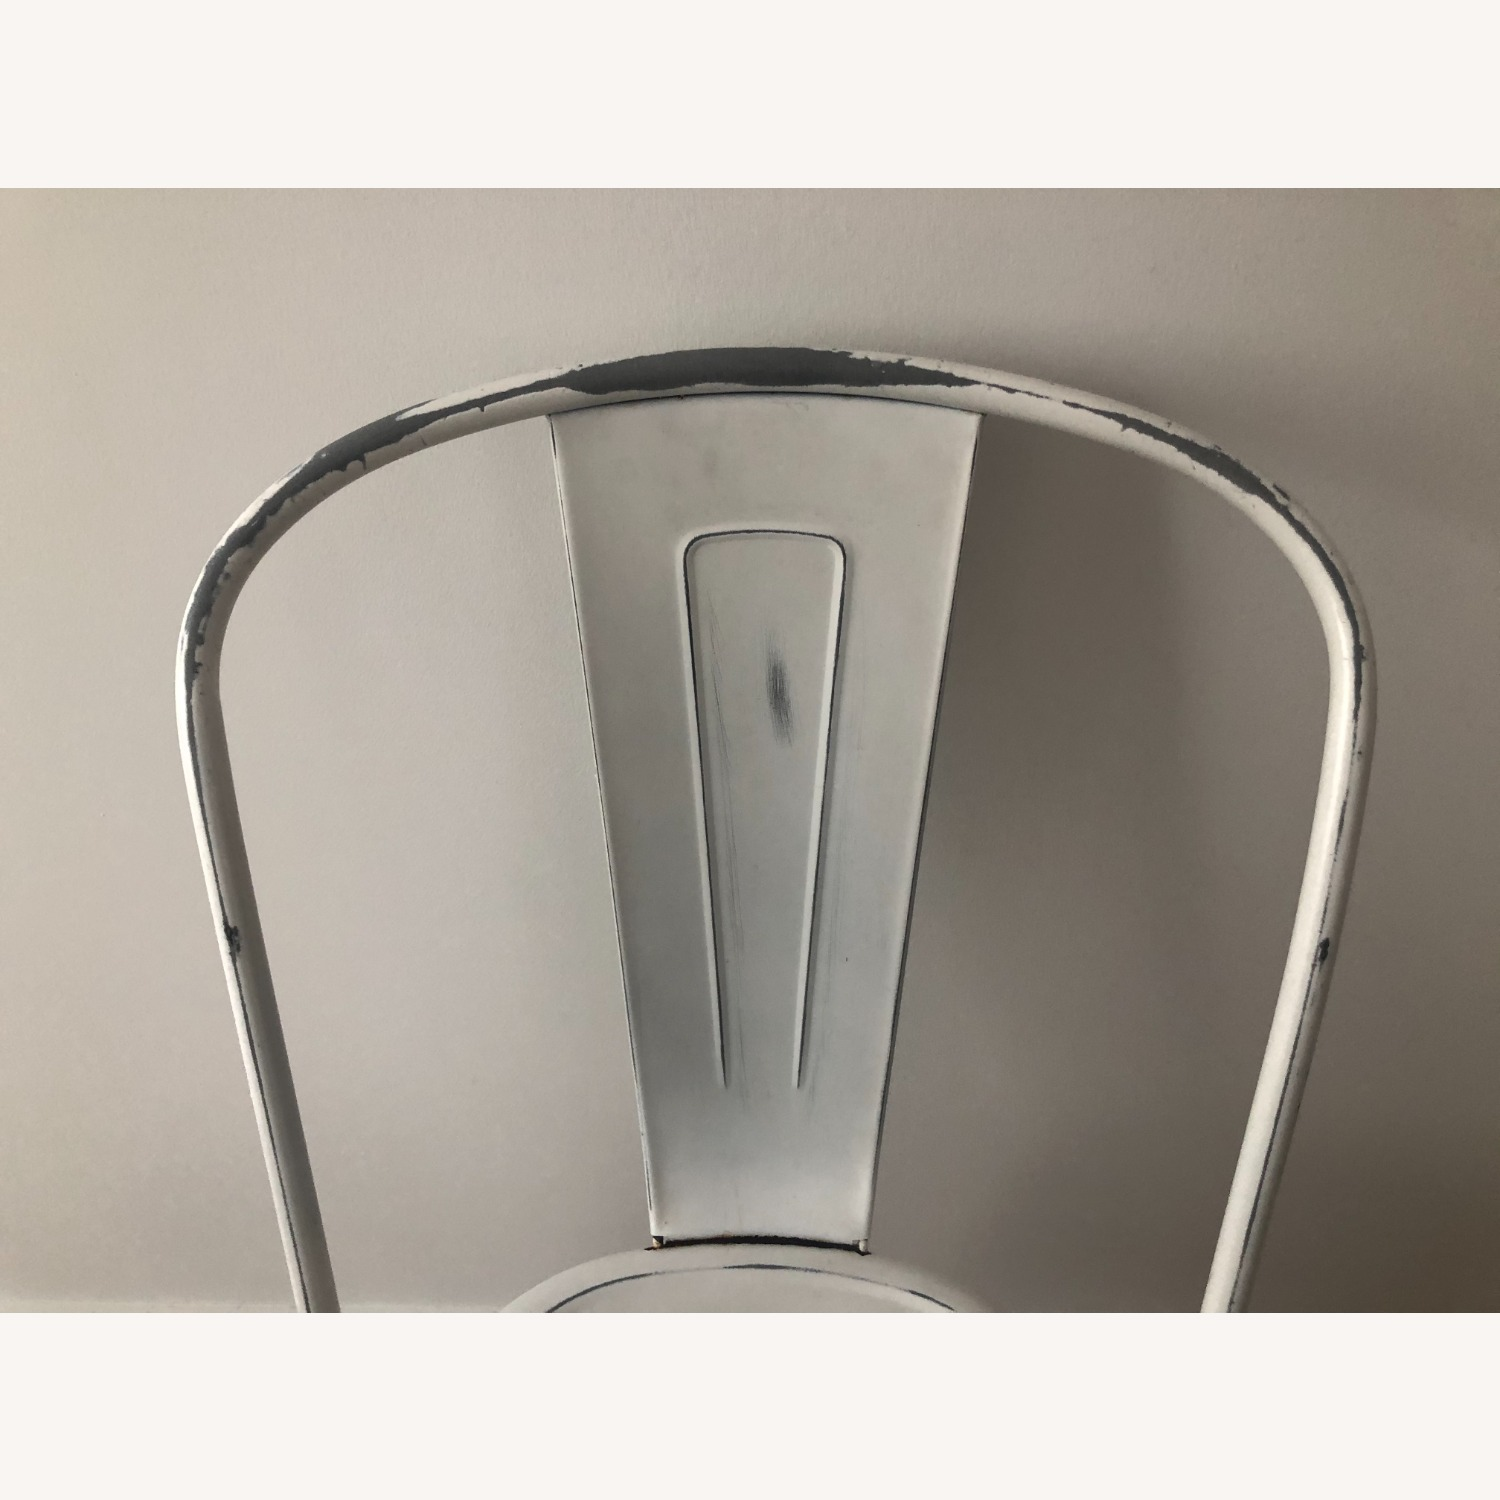 Industry West Marais A Side Chair Antique White - image-4